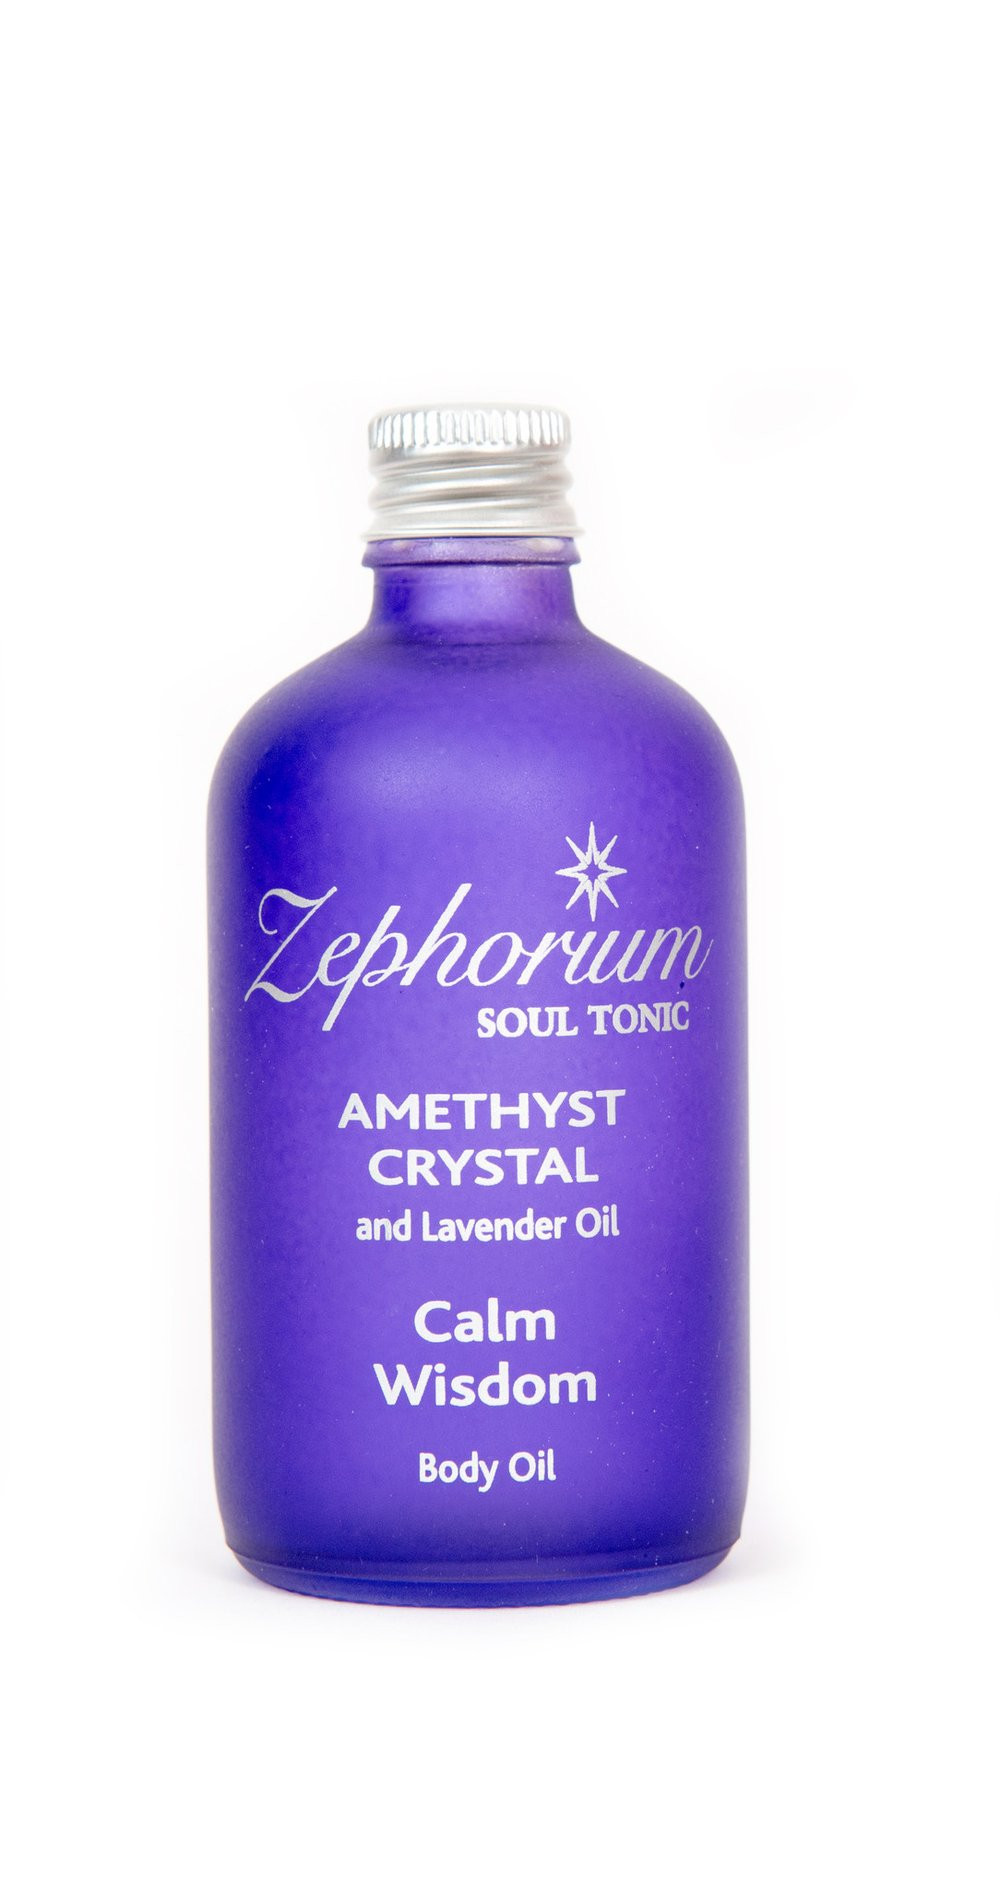 Amethyst Crystal Body Oil